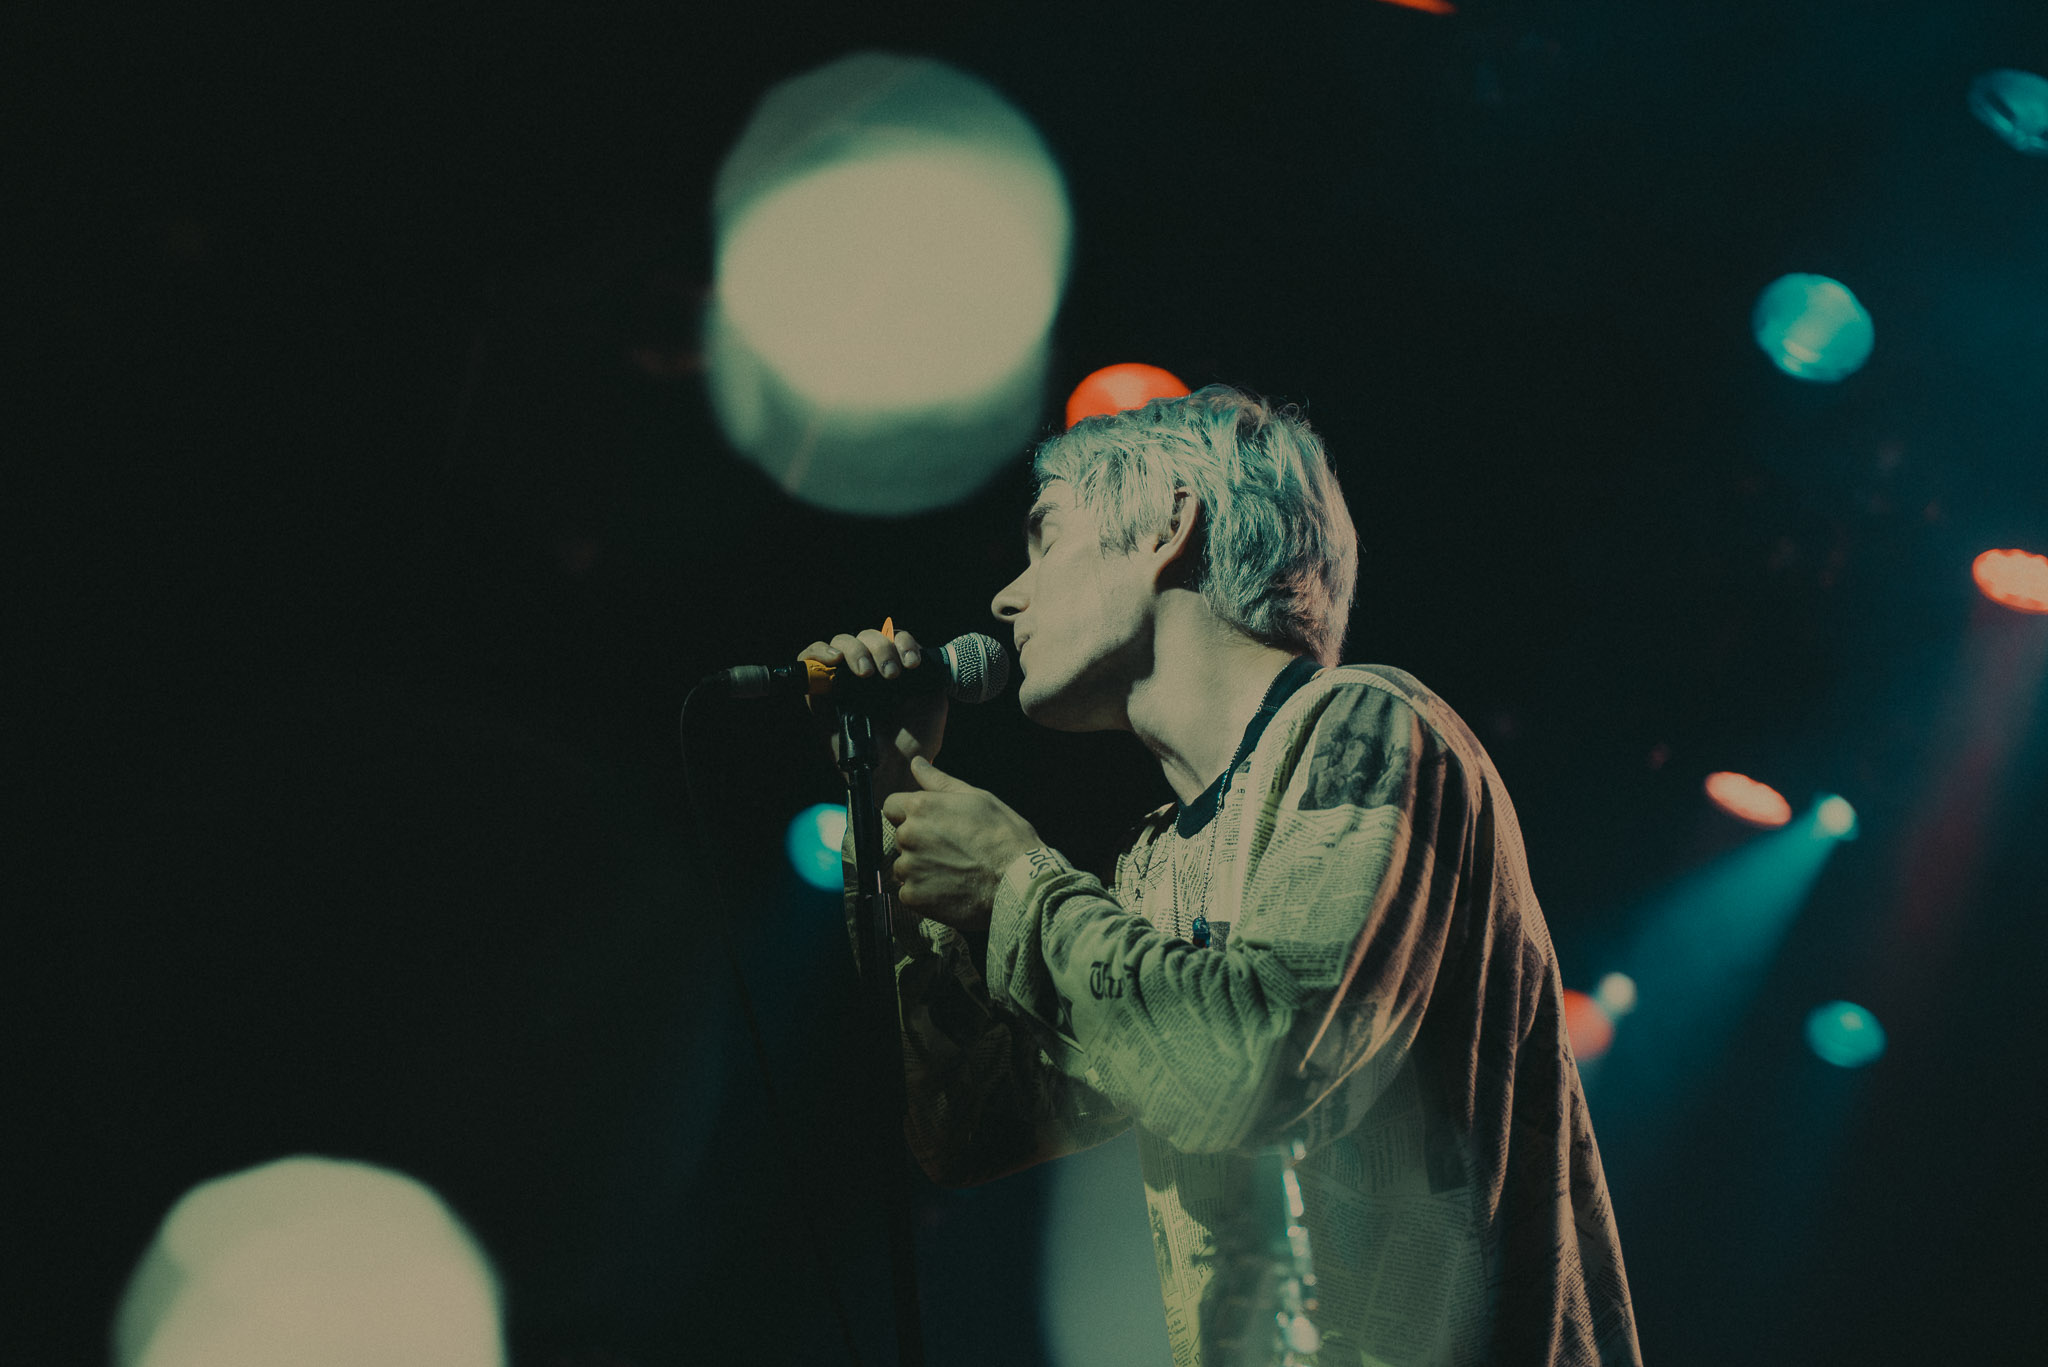 20171002-WATERPARKS-0992- @arnecrdnls.jpg